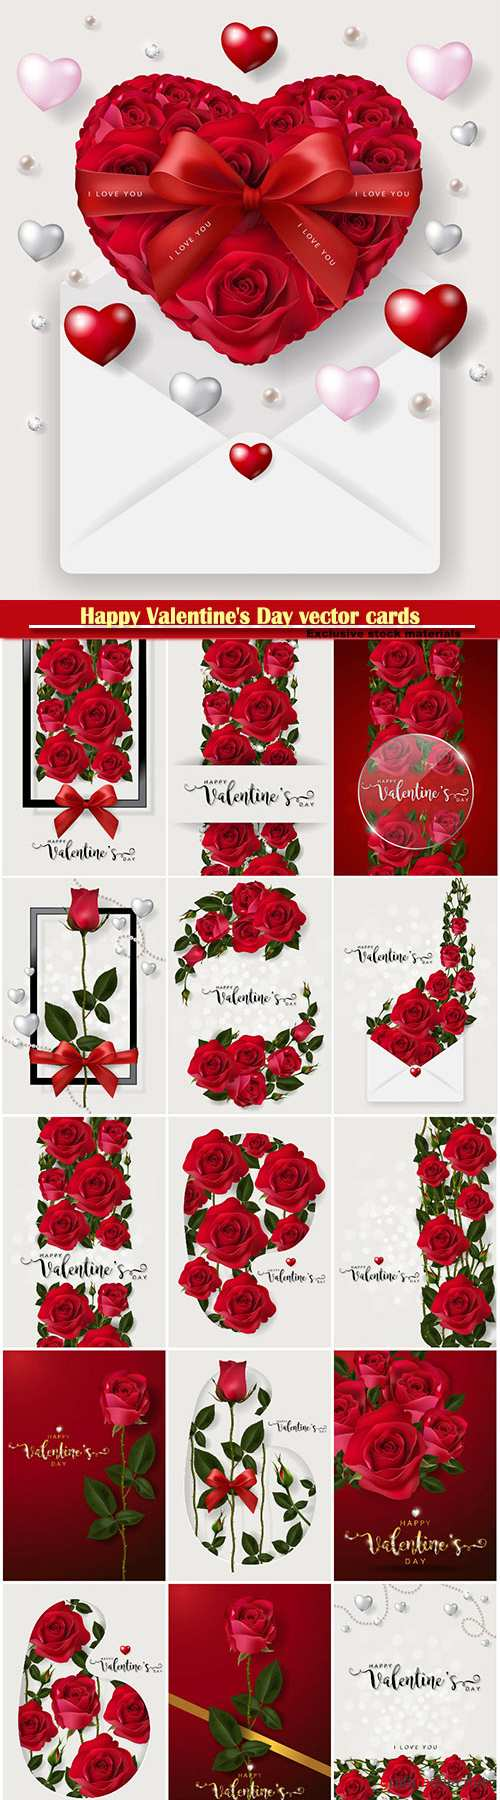 Happy Valentine's Day vector cards, red roses and hearts, romantic backgrounds # 3